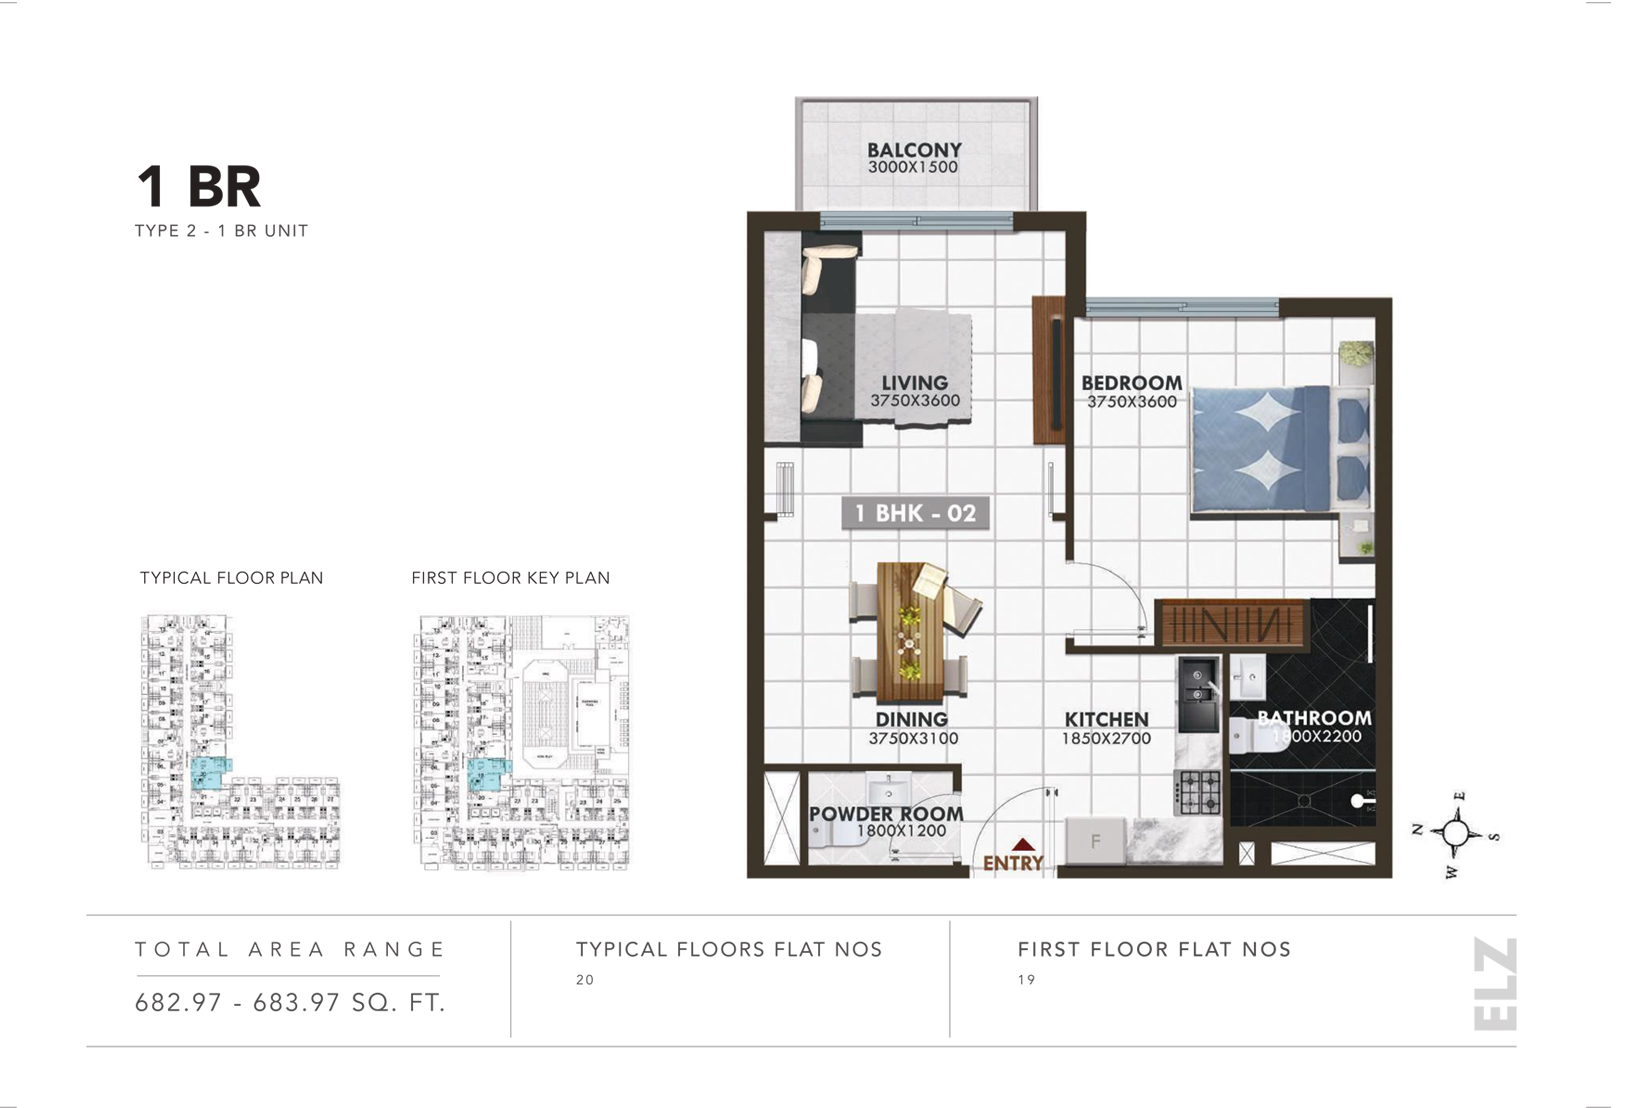 1 Bedroom Type 2, Size 682.97 - 683.97 Sq.ft.